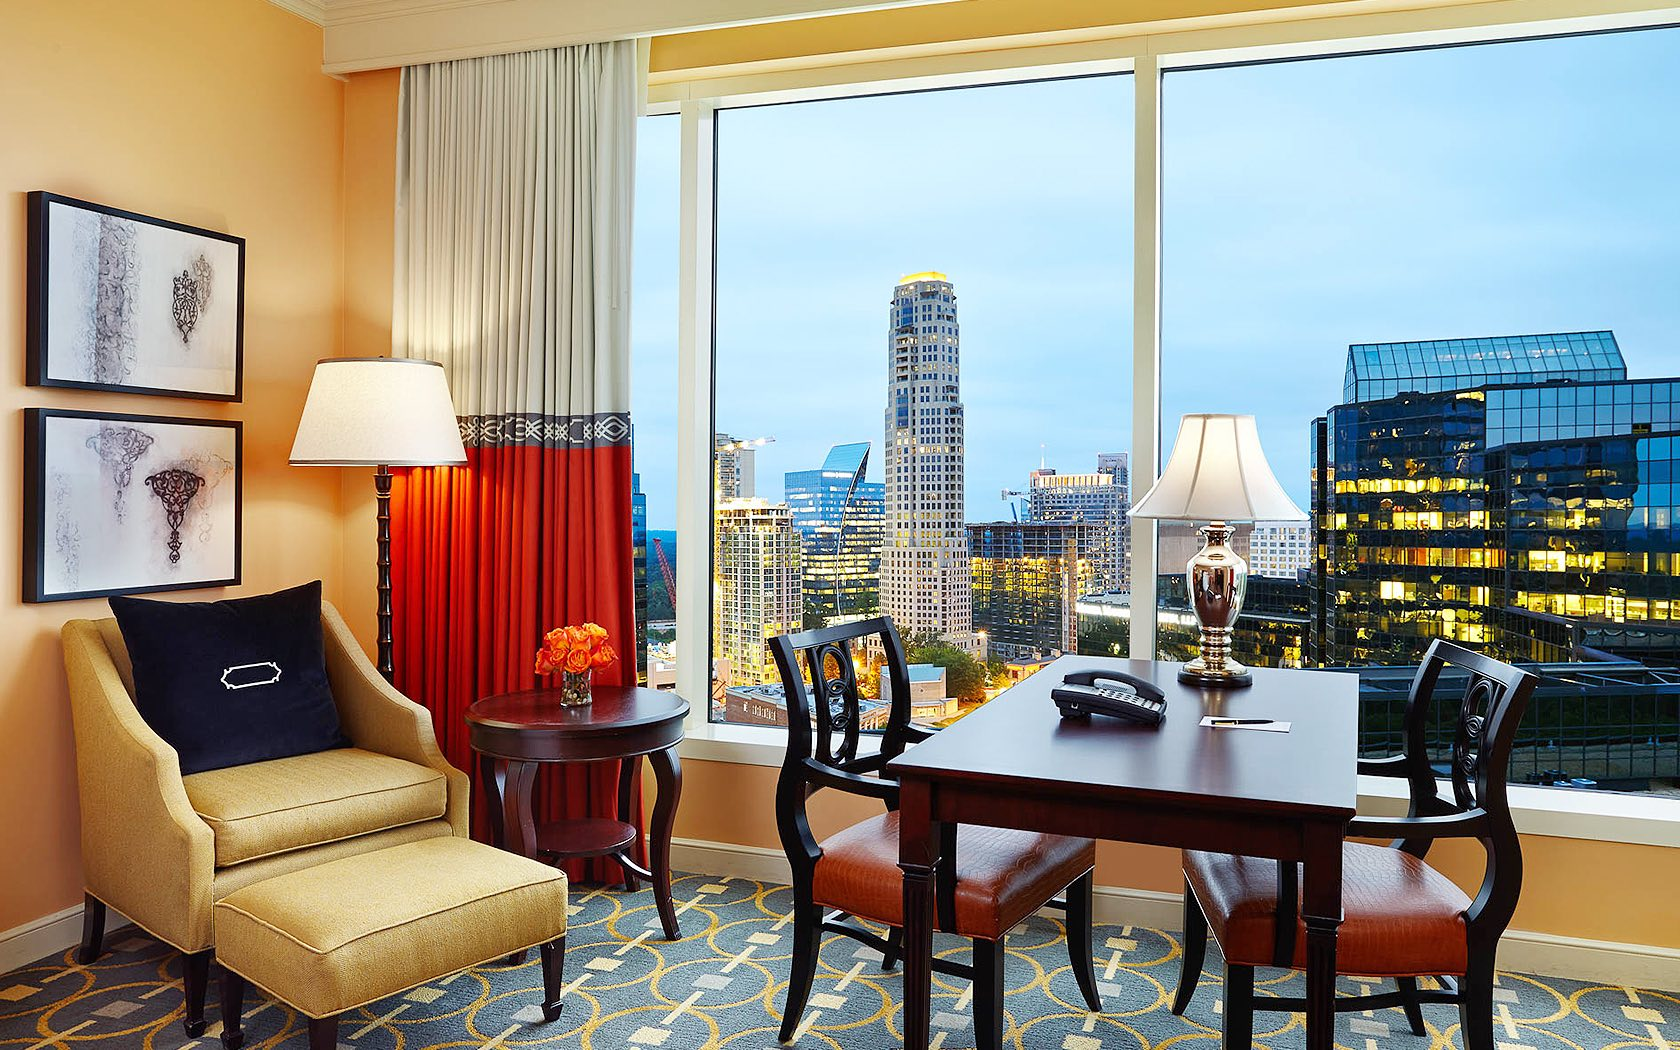 hotel room with wooden table and chairs against a view of Atlanta city skyline